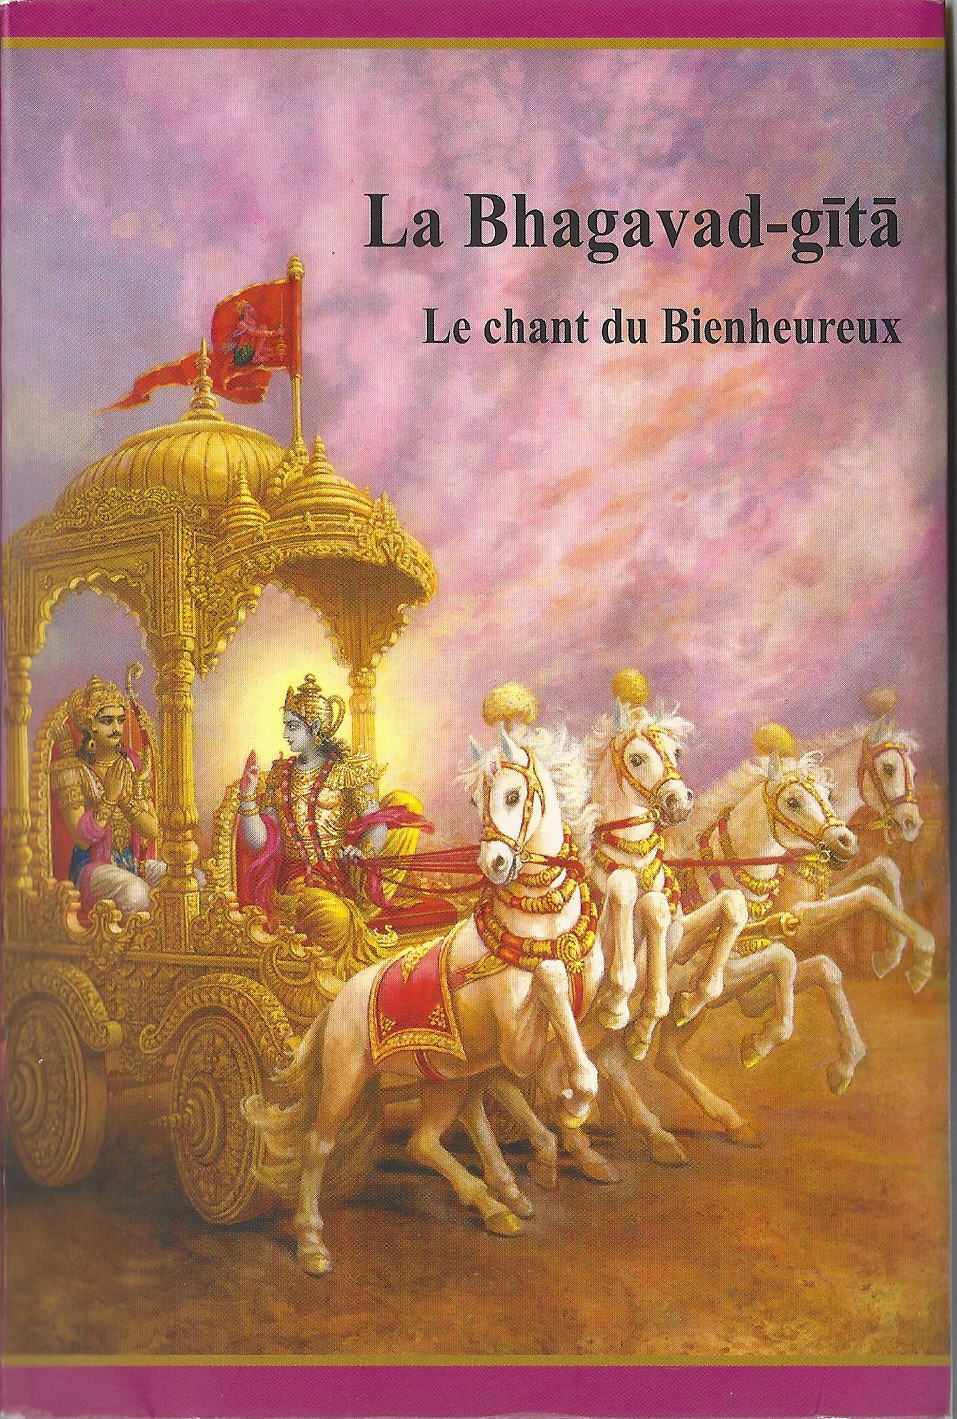 a summary of bhagavad gita On his thinking were the bhagavad-gita and christ's sermon on the mount, both of which he read while in england in 1888-91 from the former, one of the greatest works of religious poetry in hinduism, gandhi.